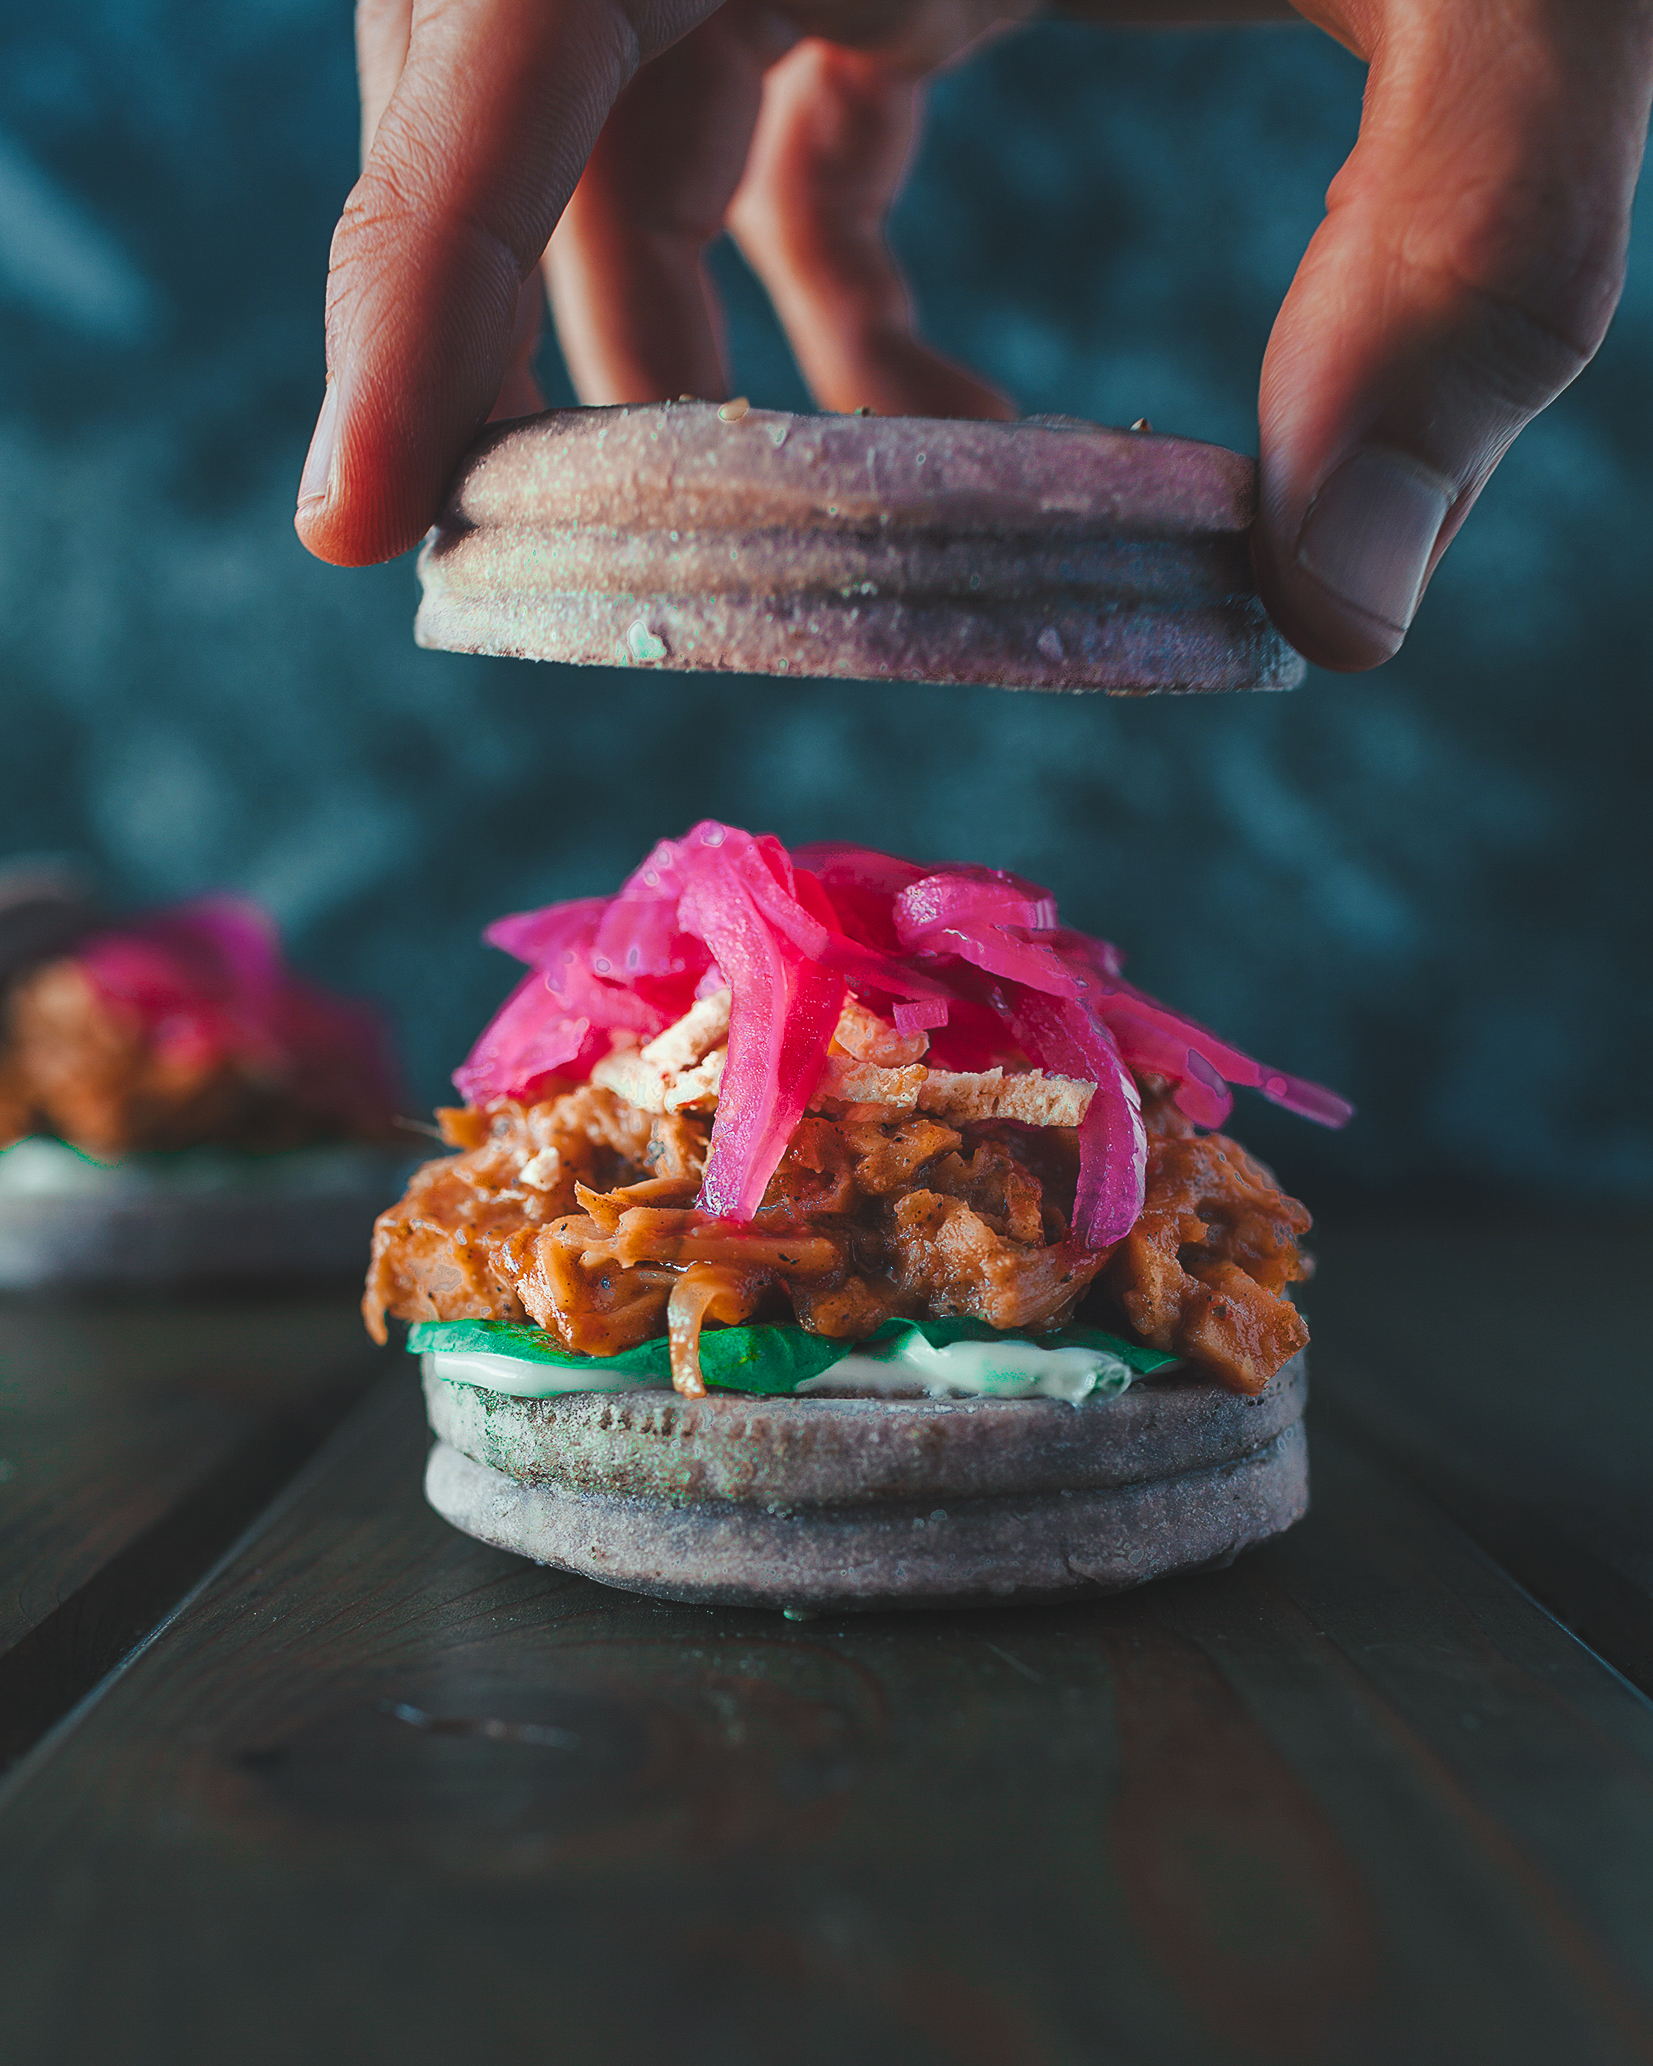 This sandwich features the meaty jackfruit, garlic aioli, pickled red onions, and vegan pepper jack cheese on a black goji berry gluten-free bun. This sandwich is irresistible and packed full of explosive flavor!